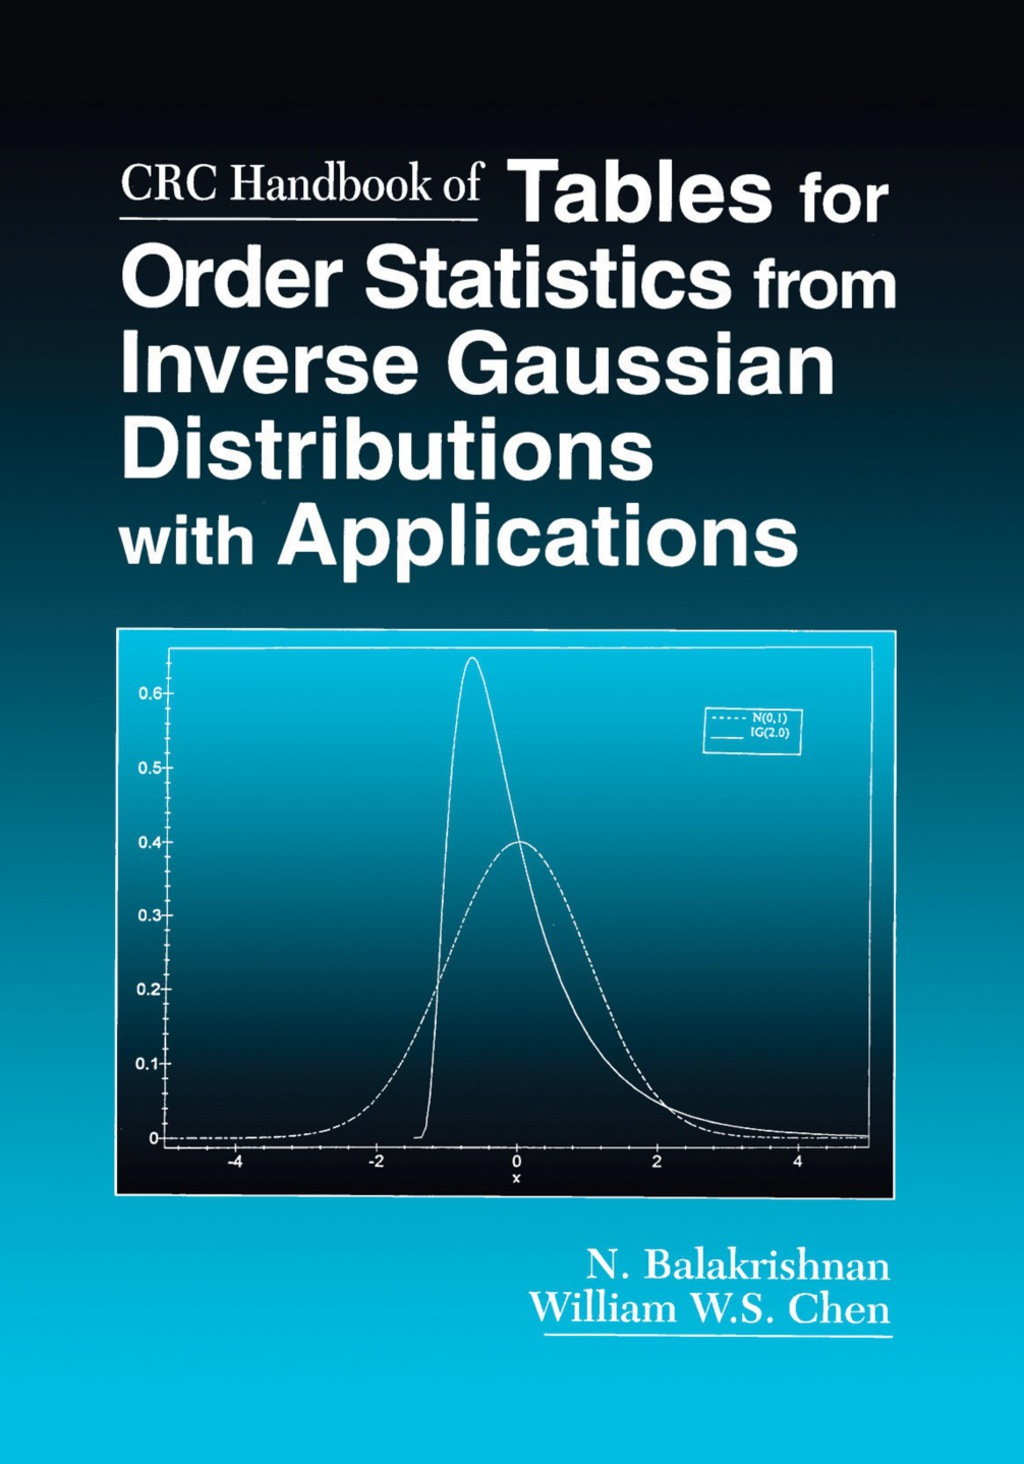 CRC Handbook of Tables for Order Statistics from Inverse Gaussian Distributions with Applications (eBook Rental)